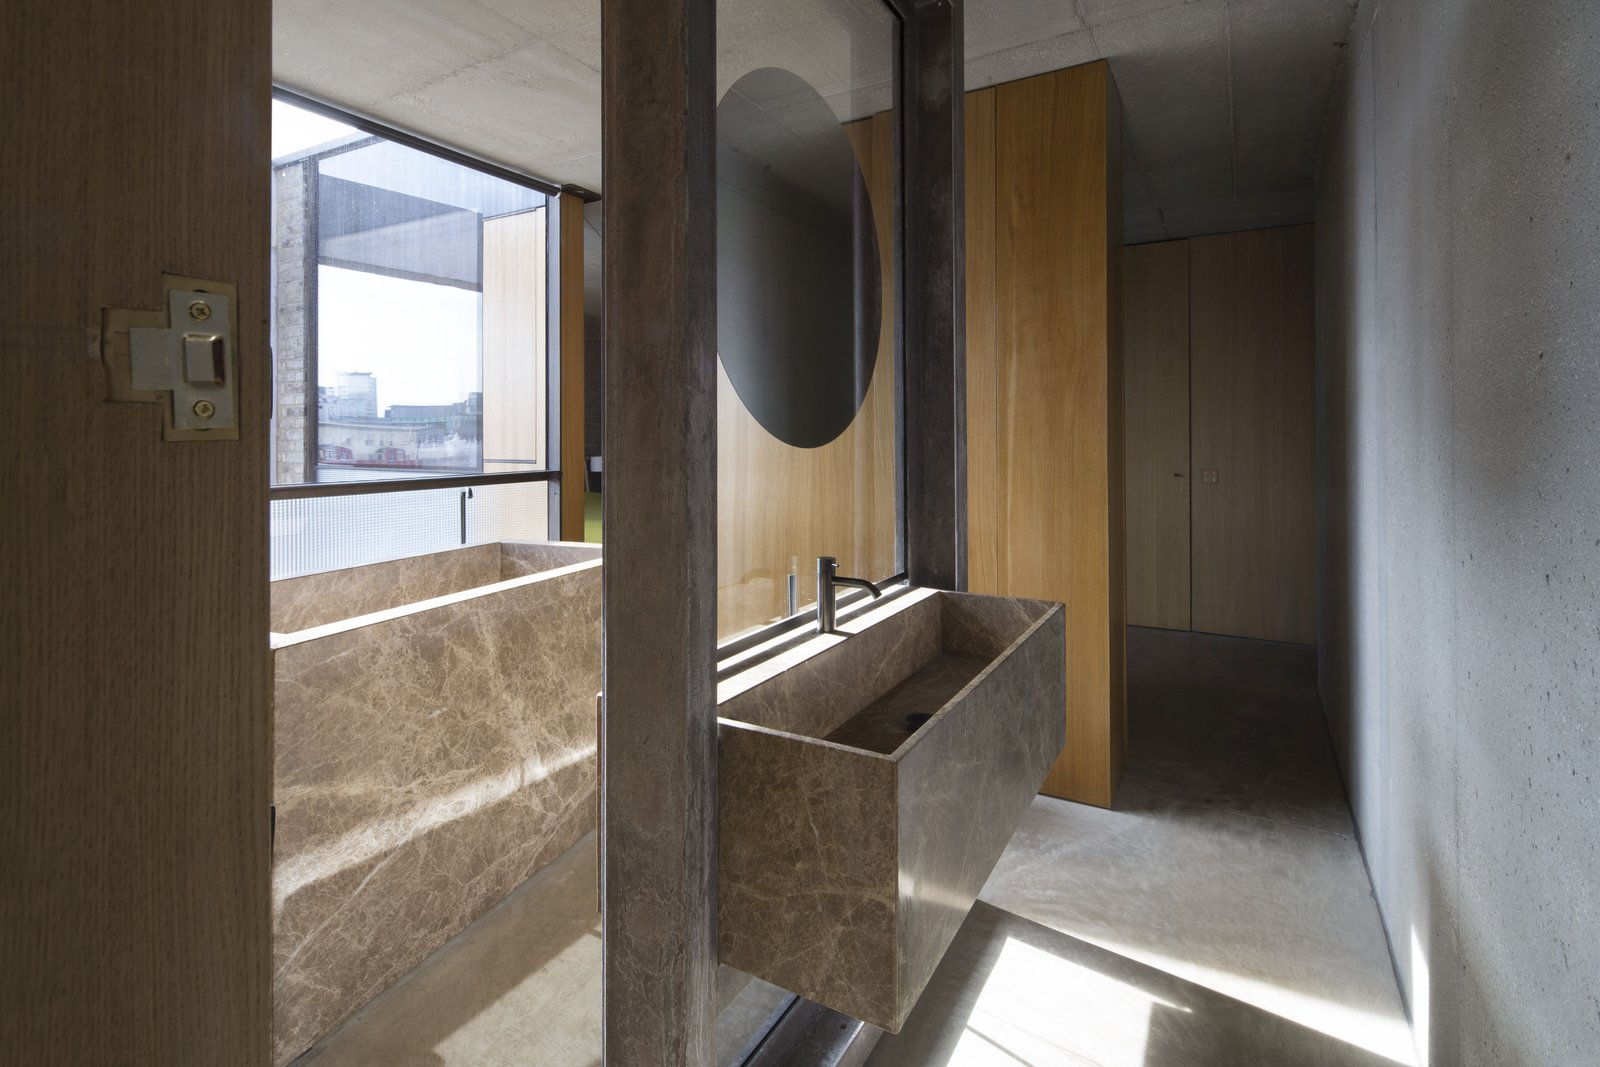 Bath Room, Concrete Floor, Freestanding Tub, Concrete Wall, and Vessel Sink  Photos from Clerkenwell Close